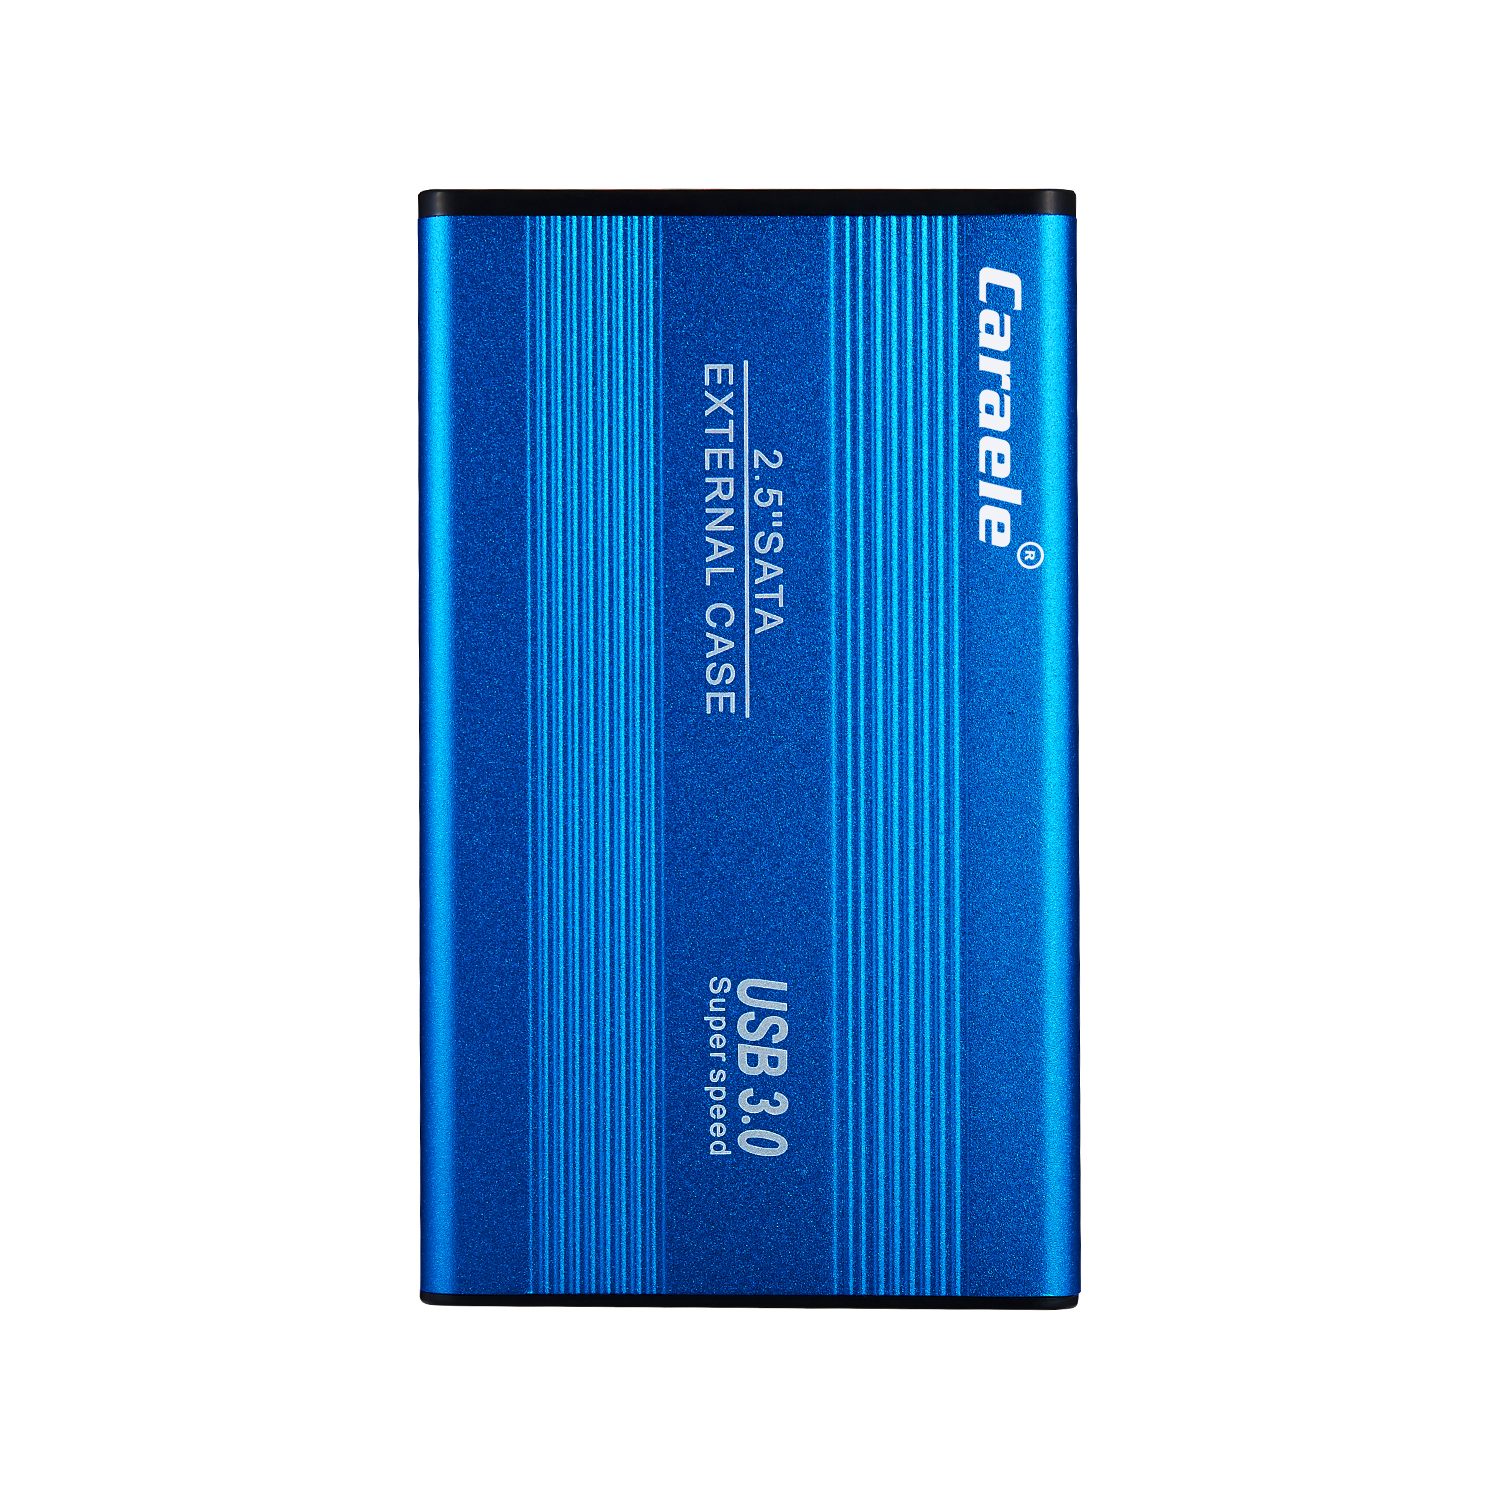 "Best price 2.5"" hard disk drive external usb3.0 hdd 500GB 1TB 2TB for laptop hard drive"